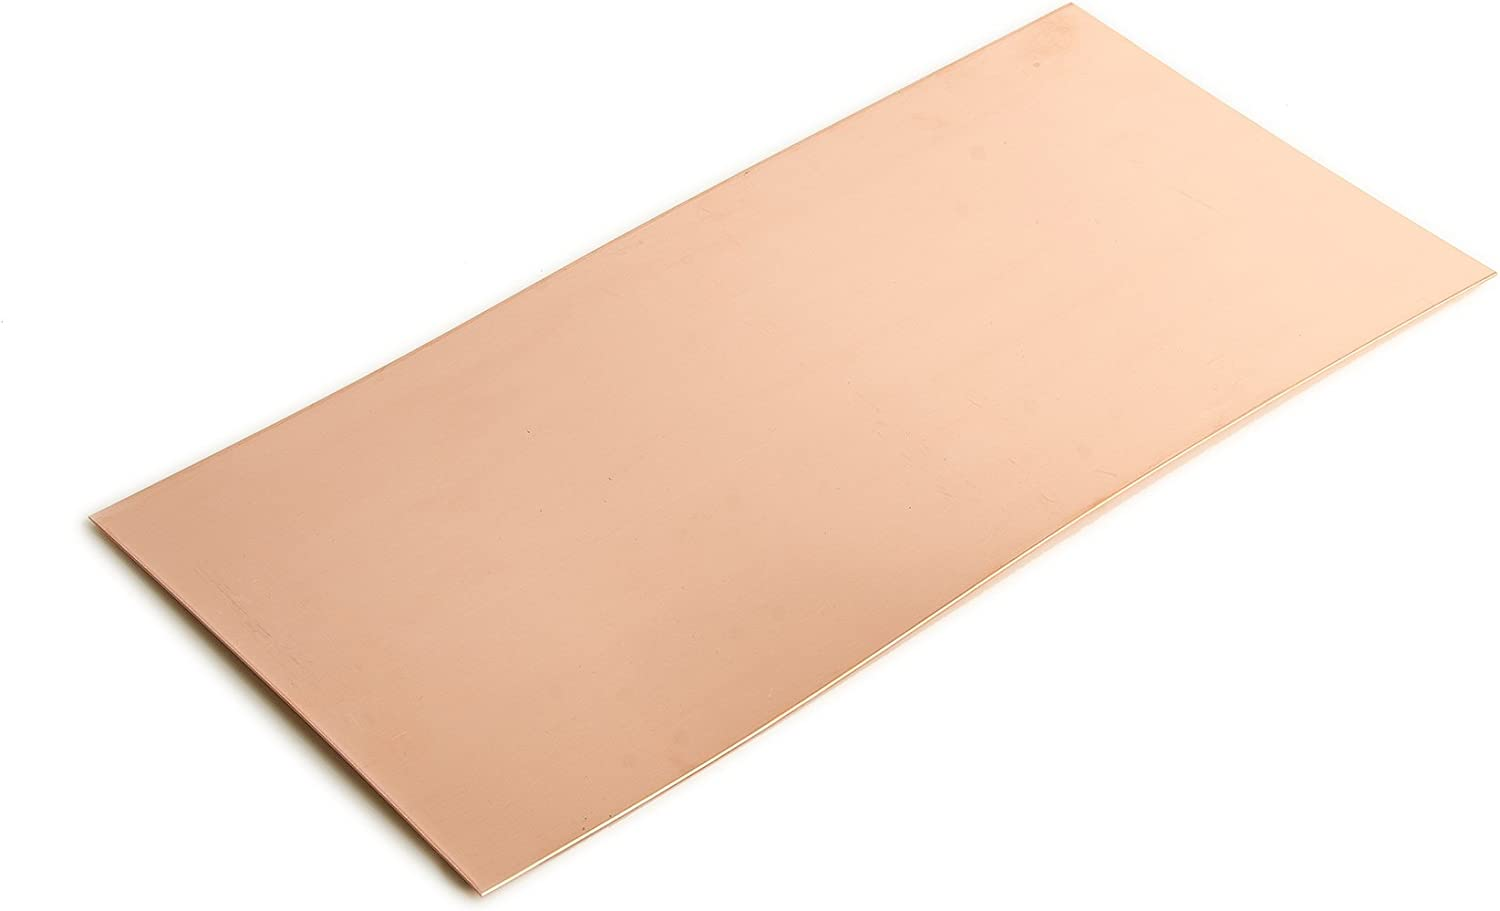 Amazon Com Wirejewelry 26 Gauge 0 016 Dead Soft Copper Sheet Metal 6x12 Inch Arts Crafts Sewing